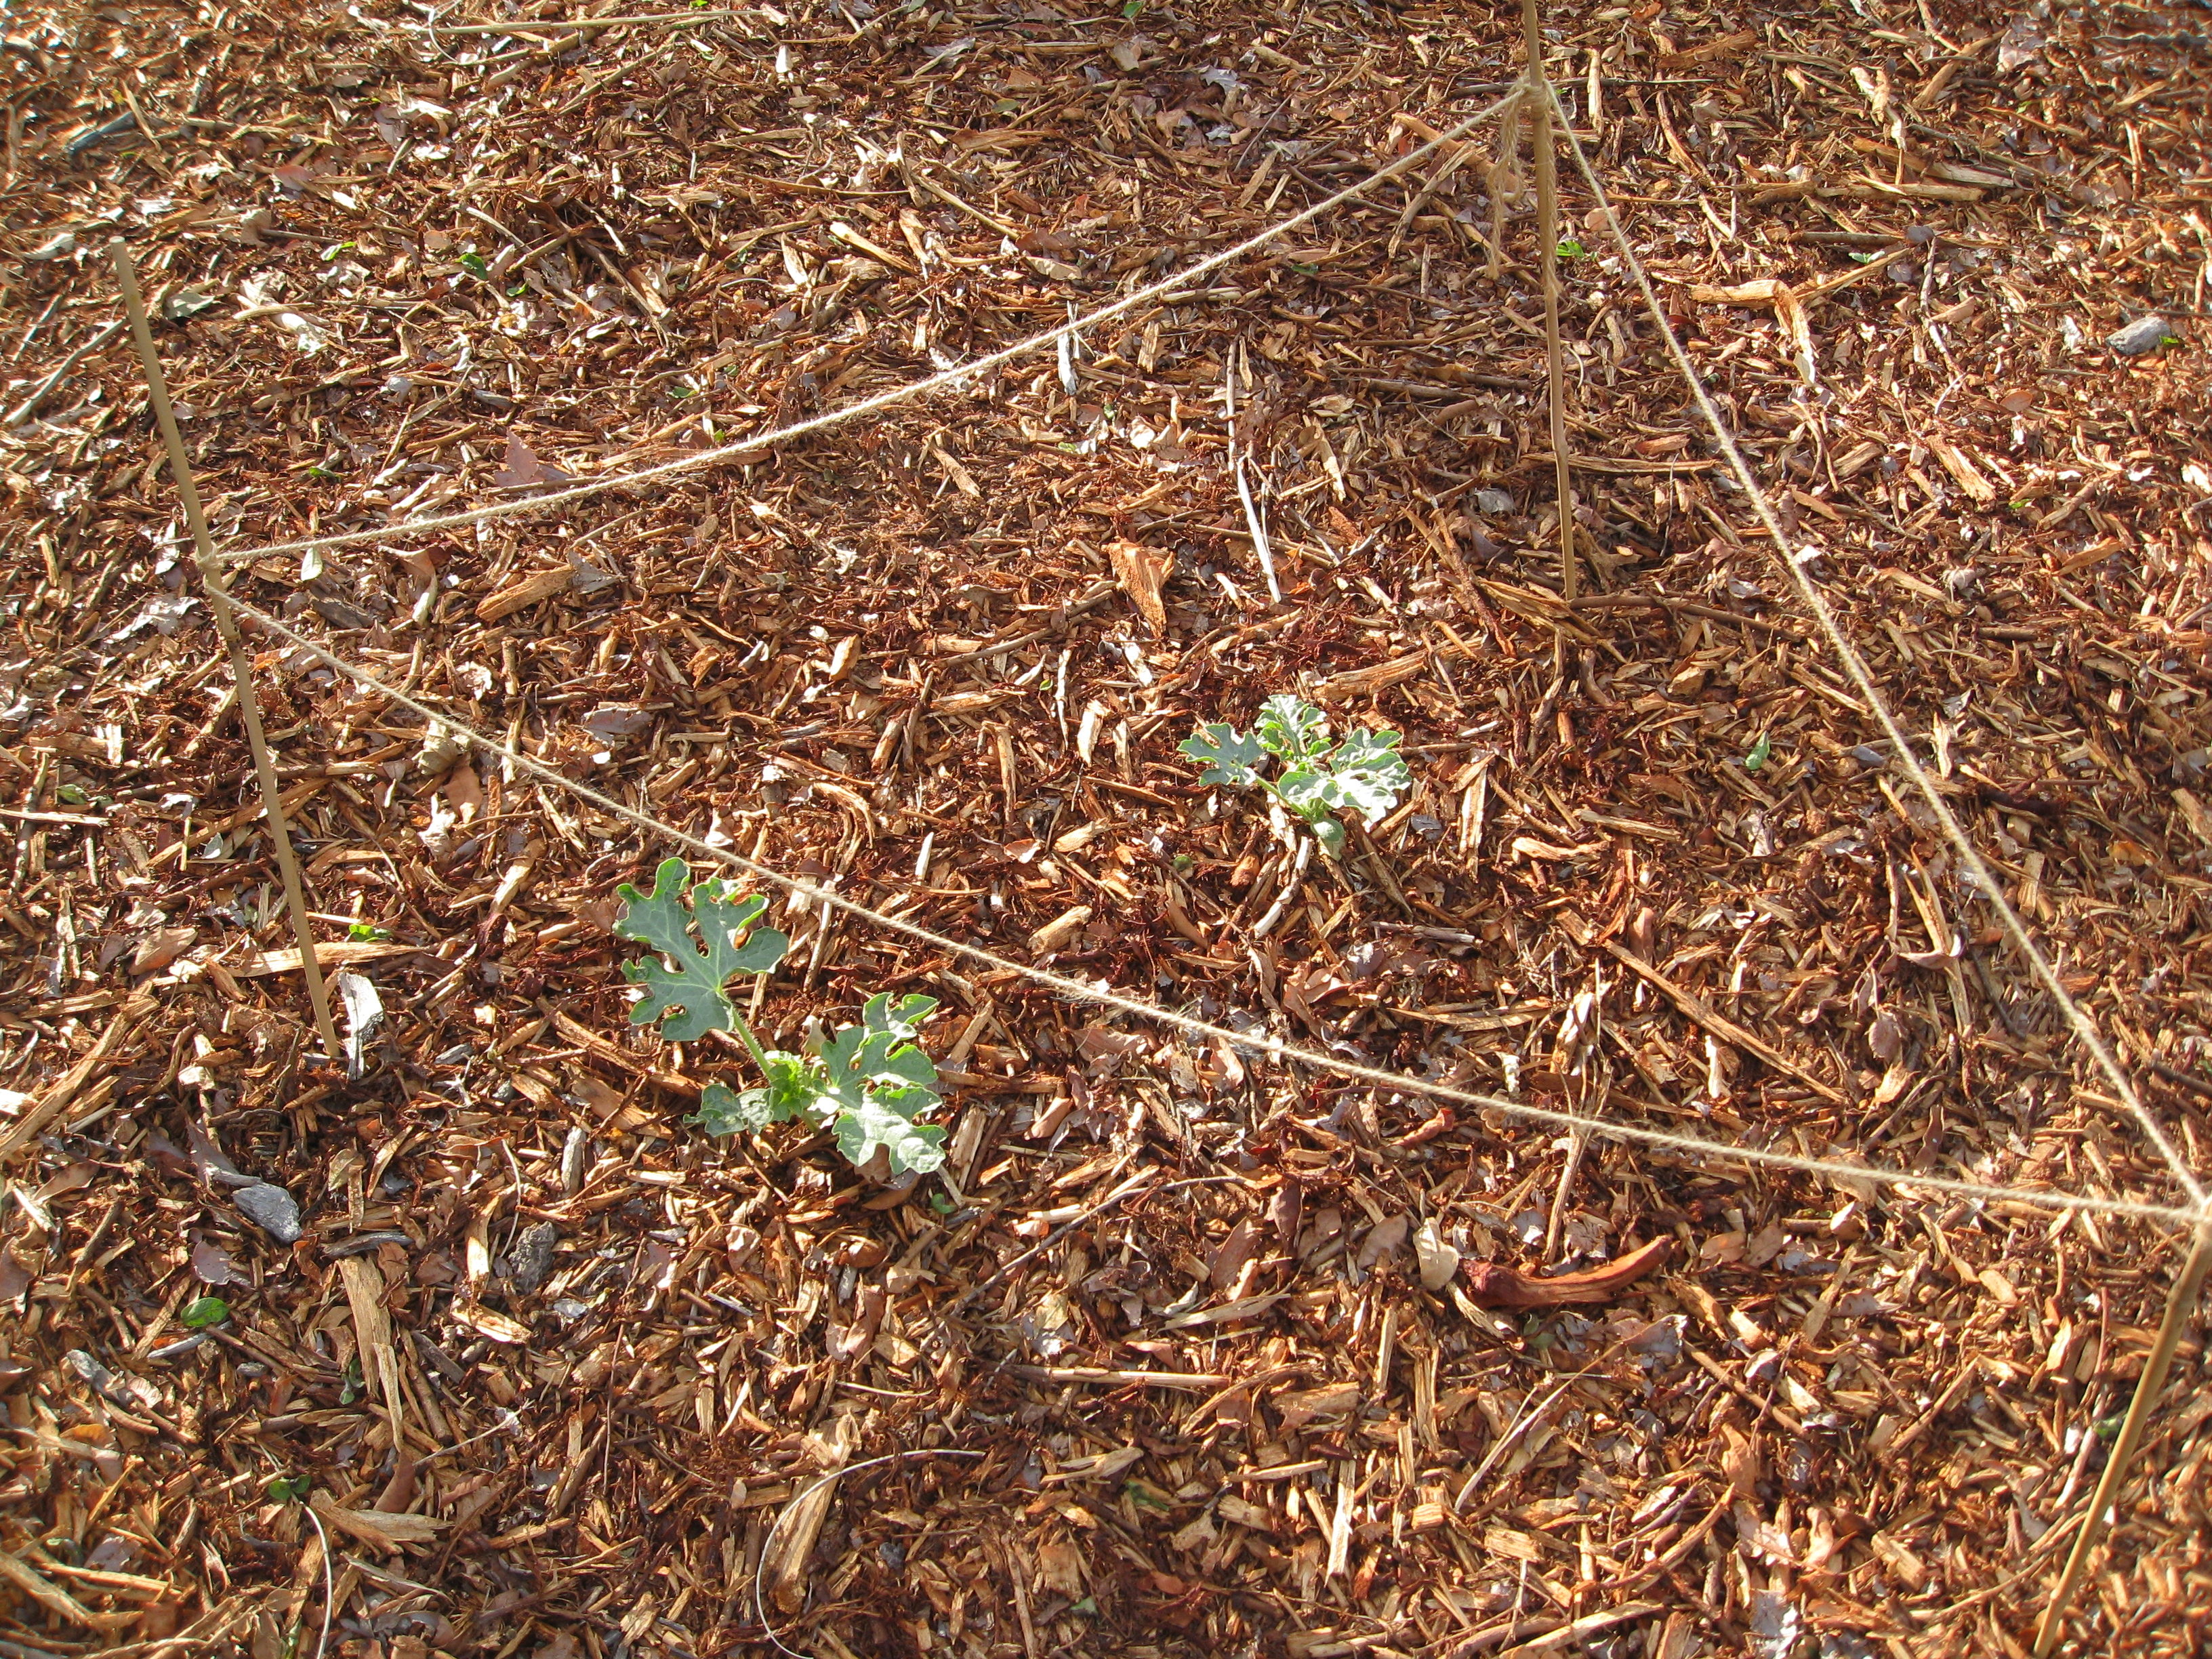 Two volunteer watermelons sprouted in the middle of the yard. We created a safe haven for them to prosper.